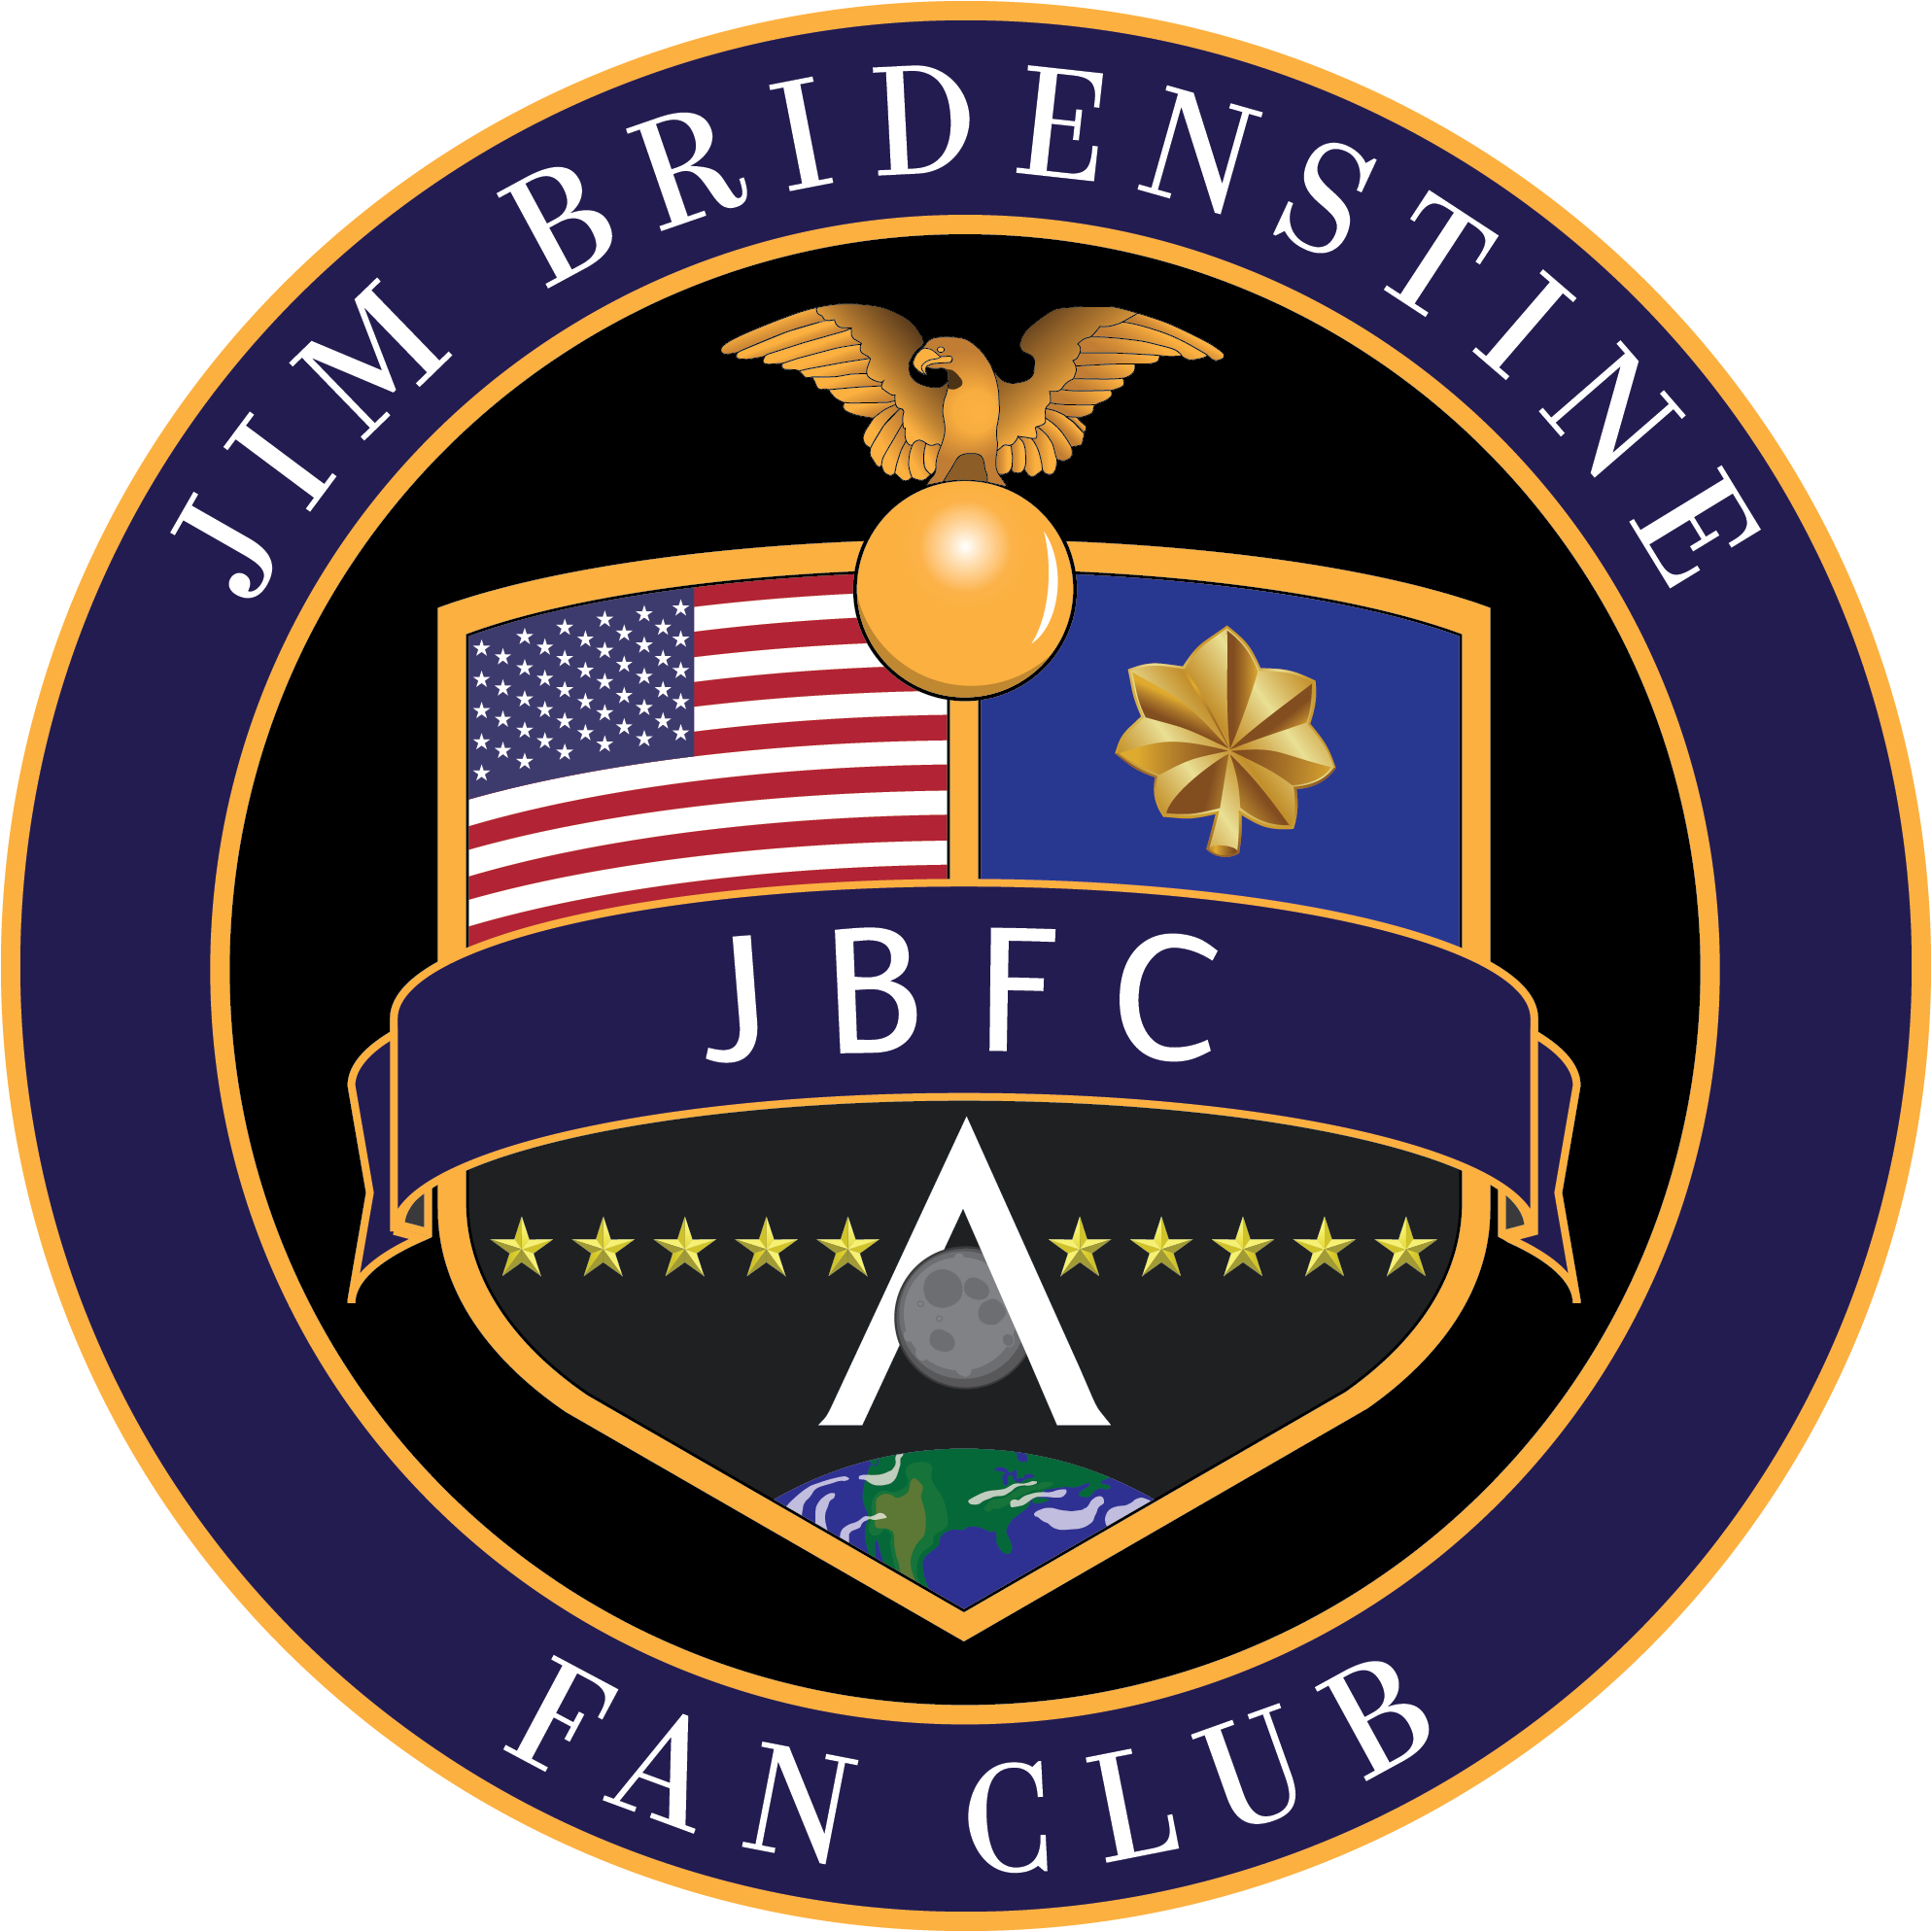 Jim Bridenstine Fan Club Crest